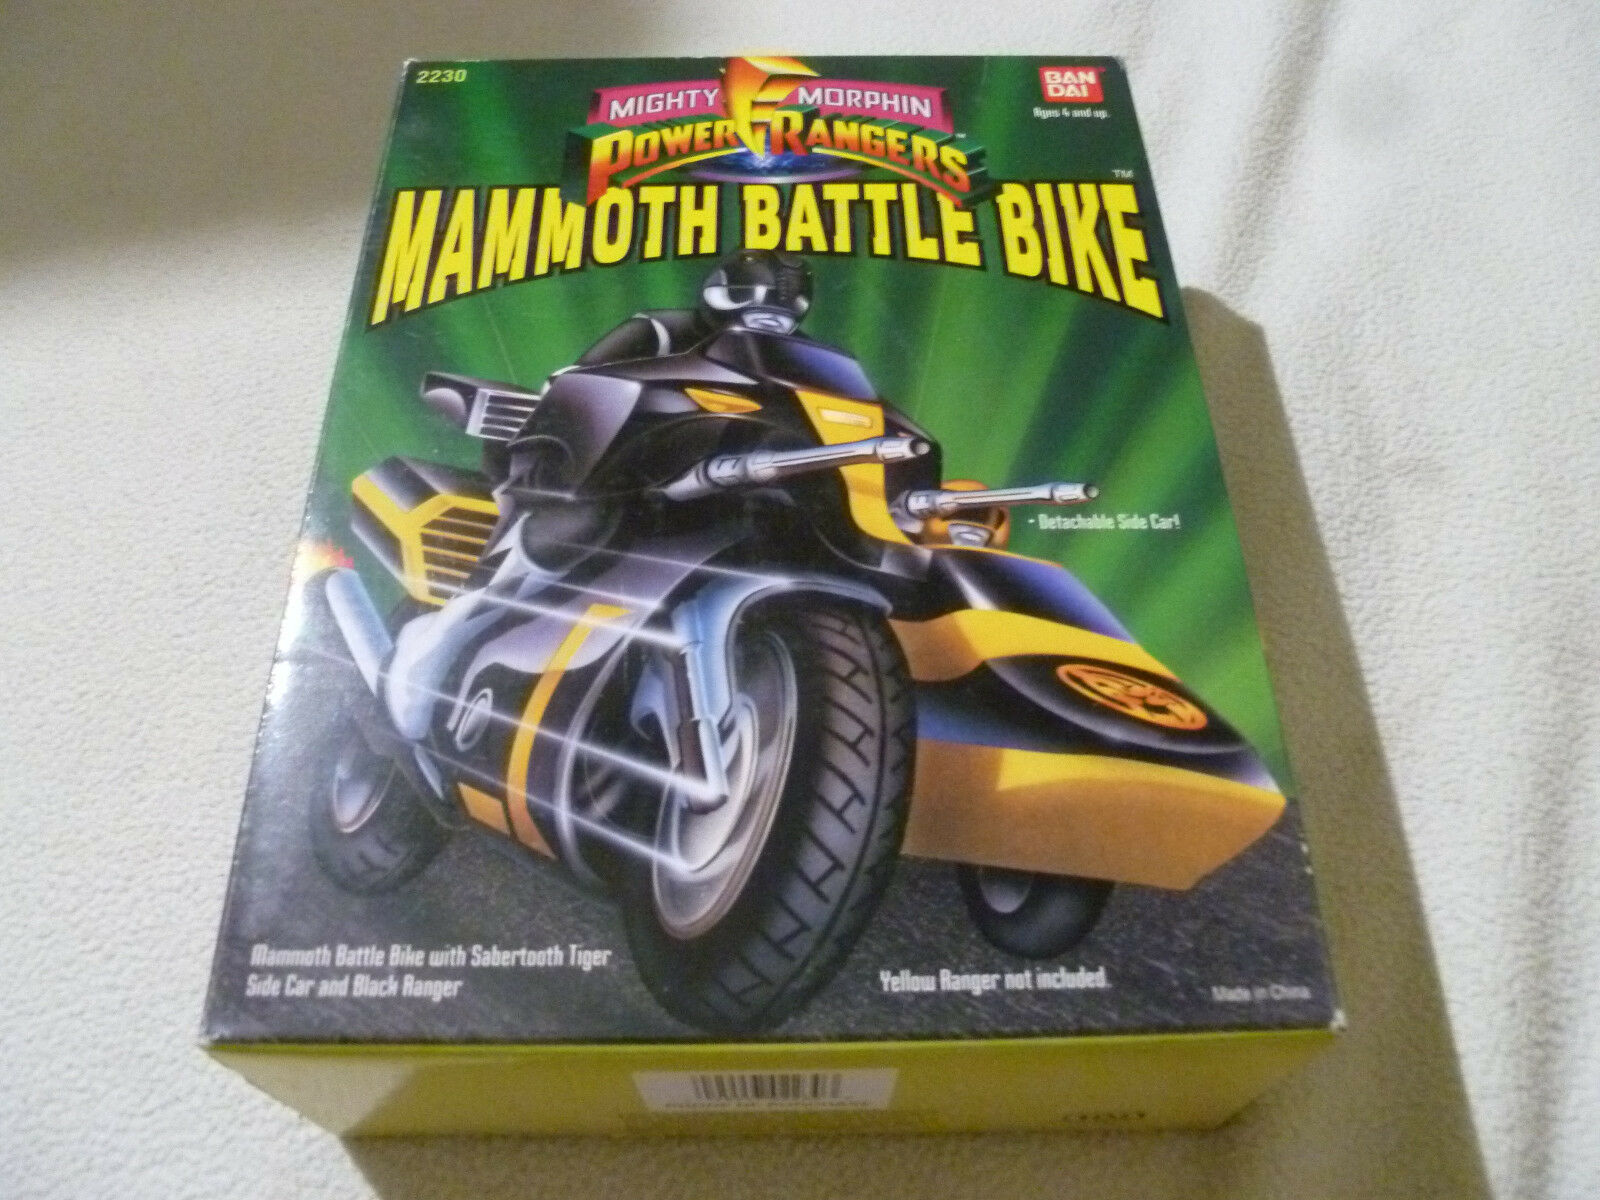 NEW IN BOX MIGHTY MORPHIN POWER RANGERS MAMMOTH BATTLE BATTLE BATTLE BIKE BANDAI 2230 NIB 1993 1649a3